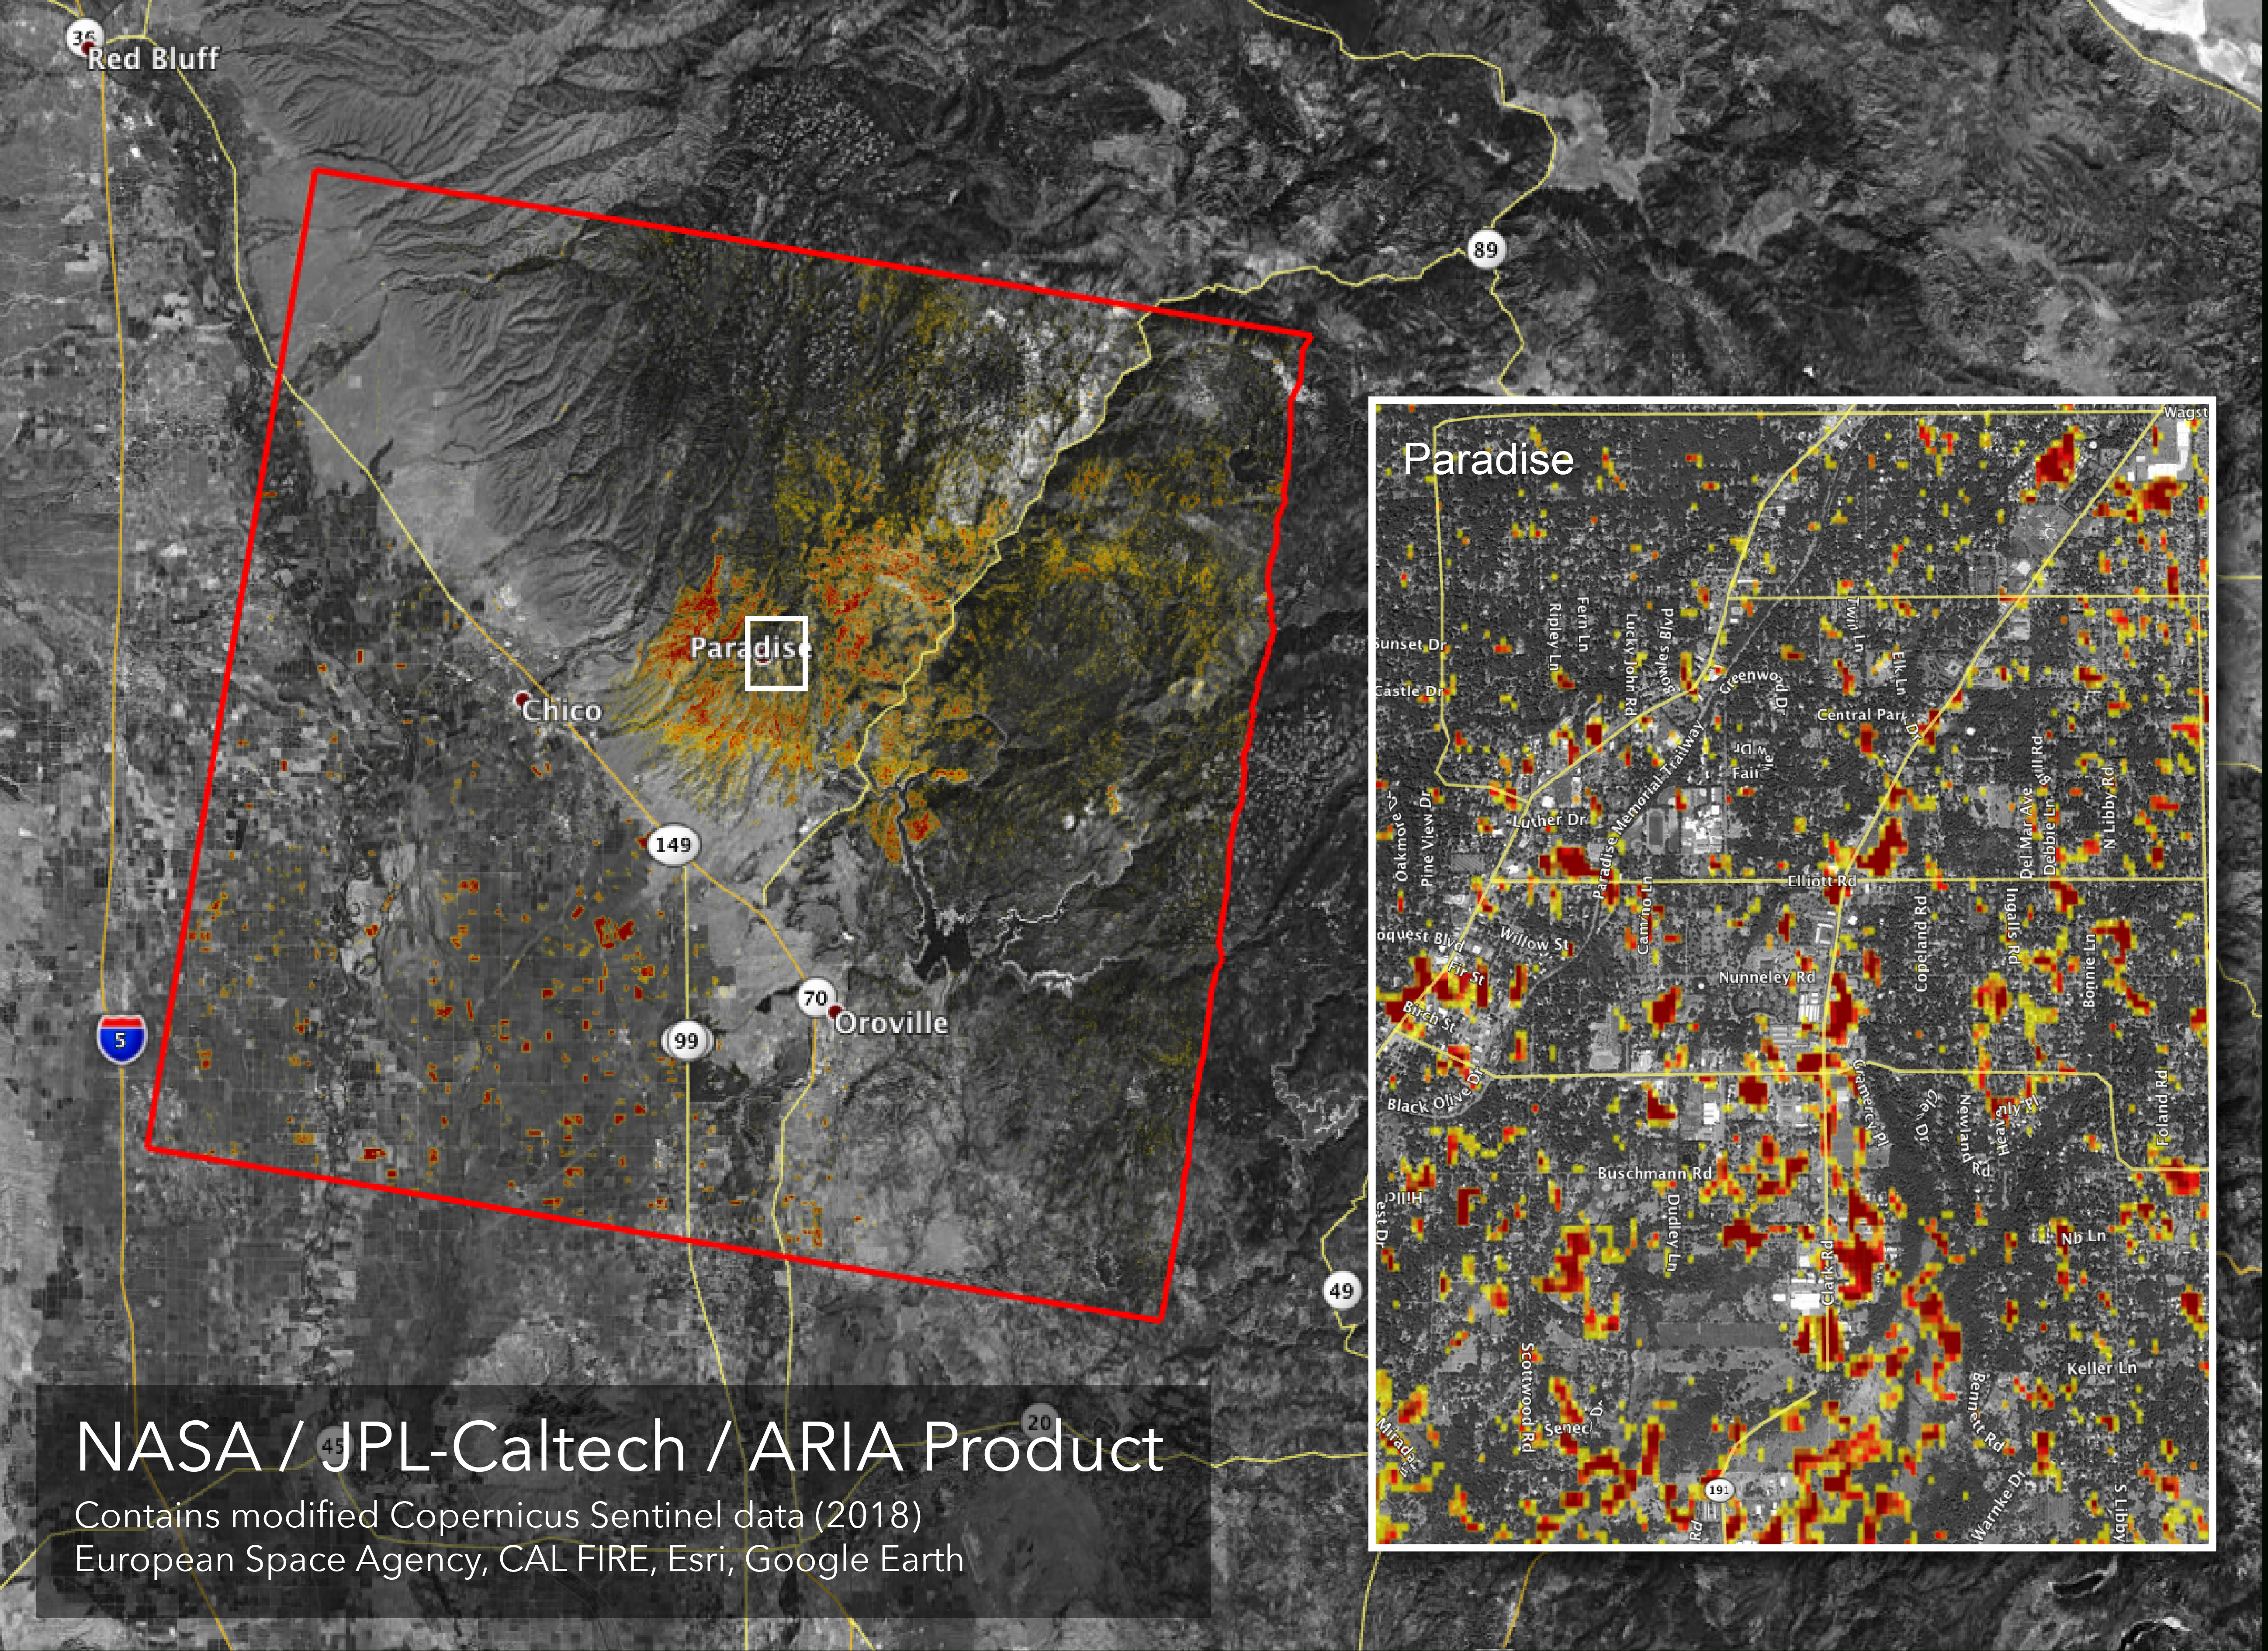 News | Updated Nasa Damage Map Of Camp Fire From Space - Map Of California Fire Damage